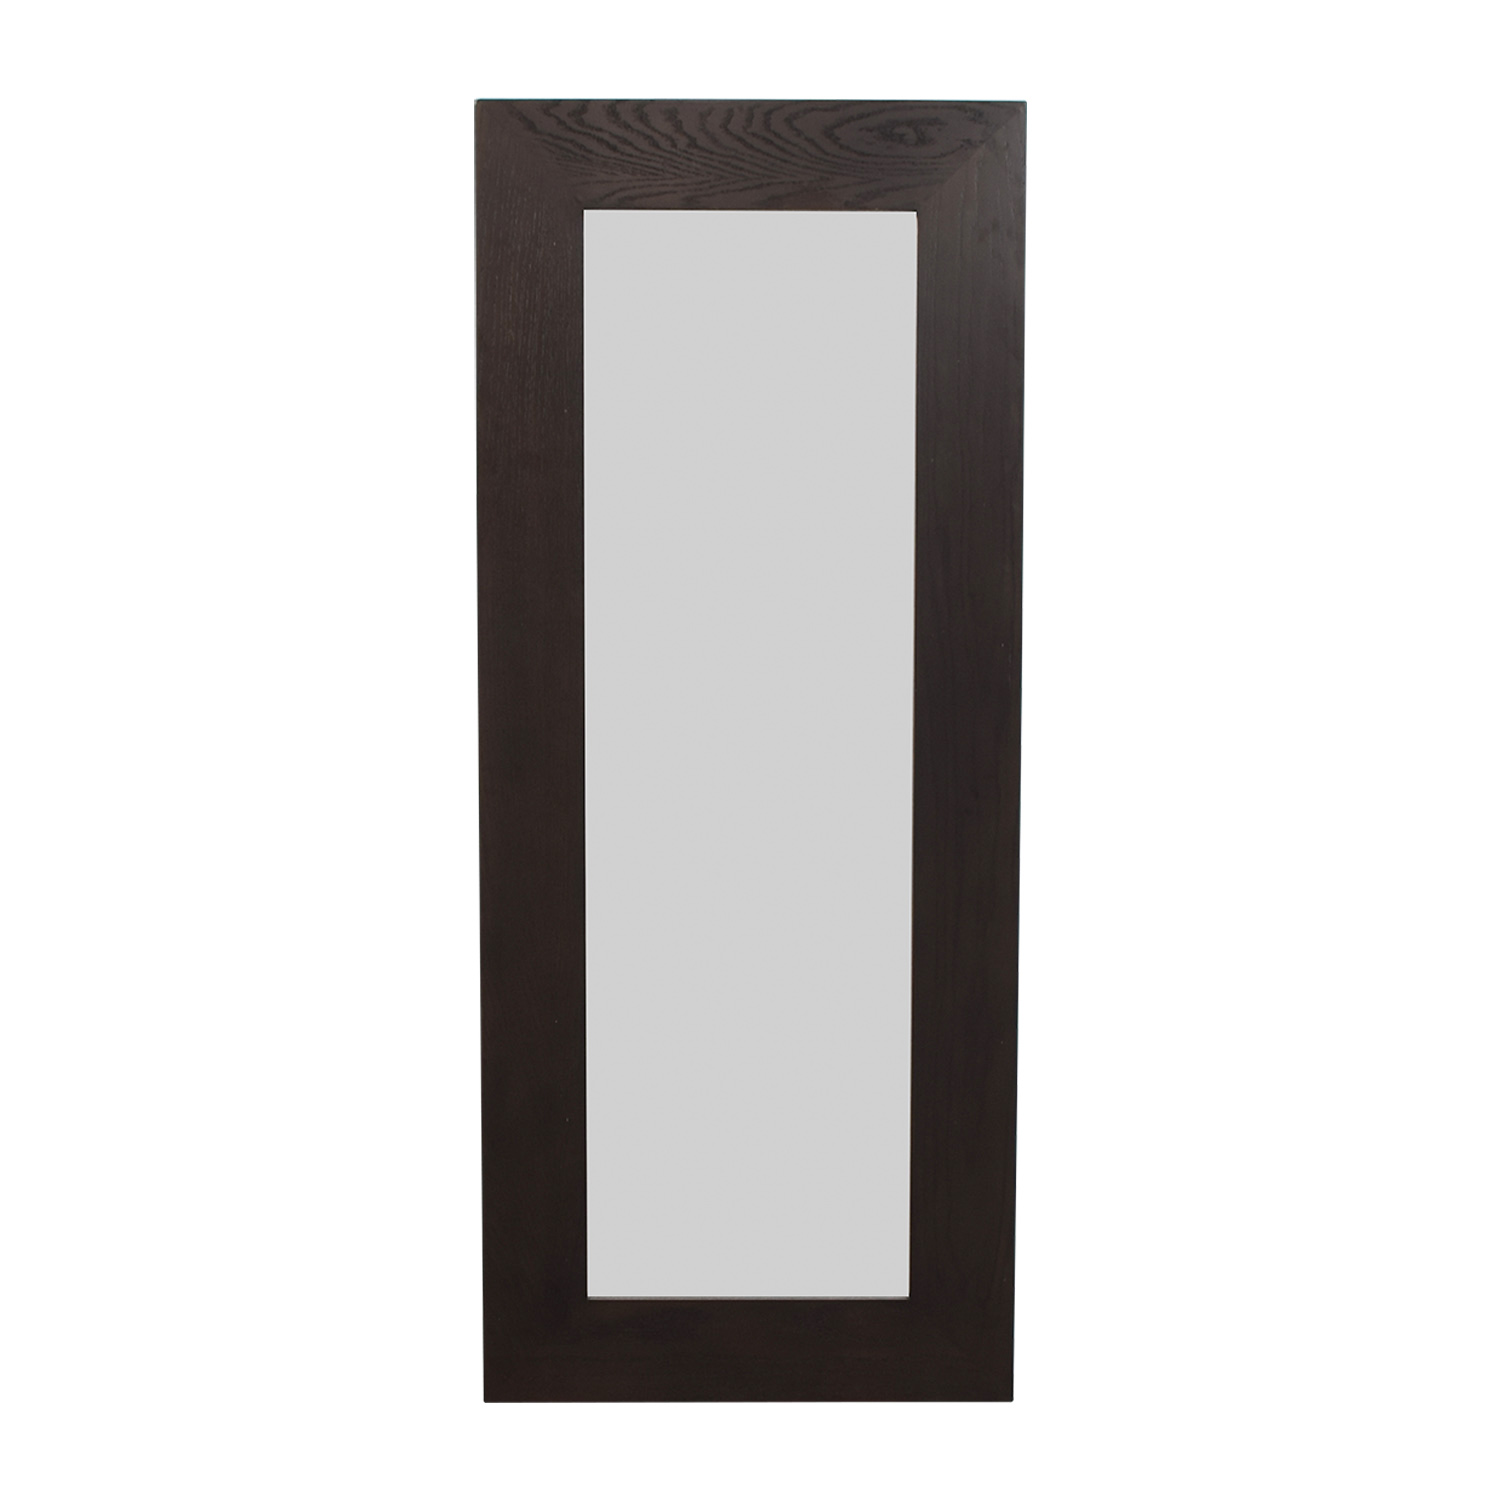 West Elm West Elm Rectangle Mirror nj